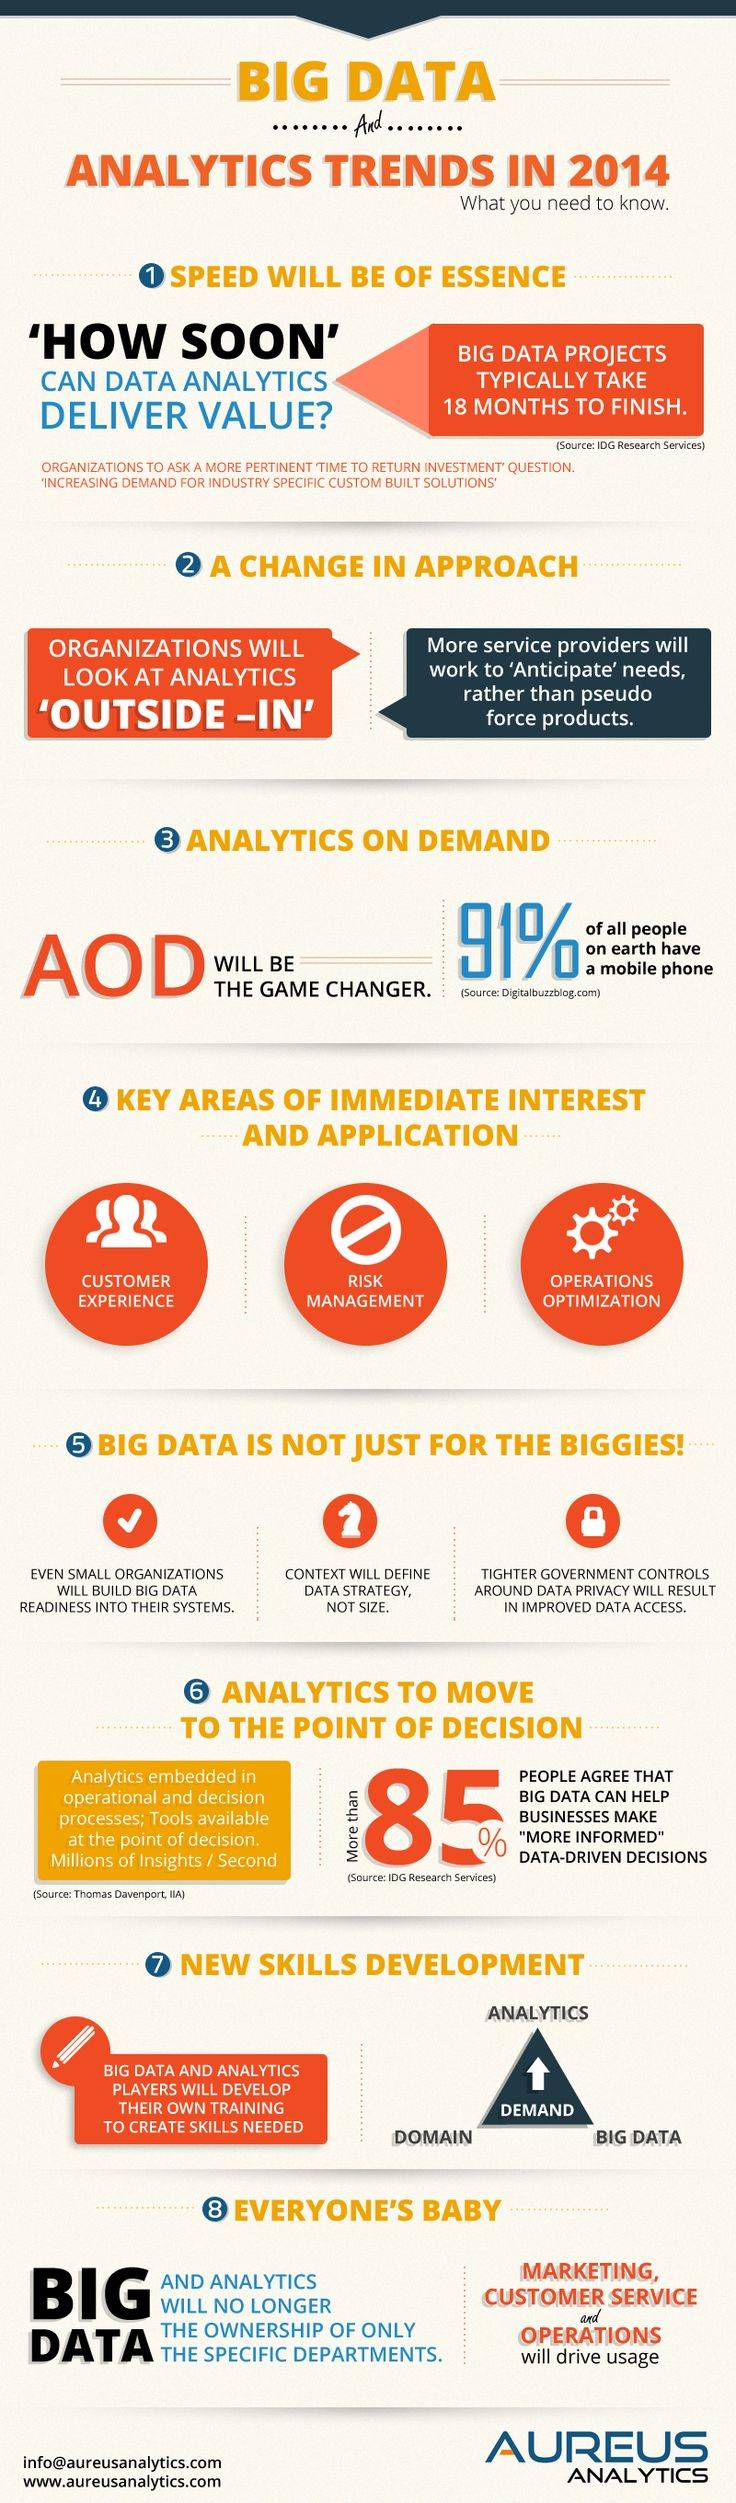 Enterprise analytics serving big data projects for healthcare - Big Data Analytics Trends For 2014 Infographic